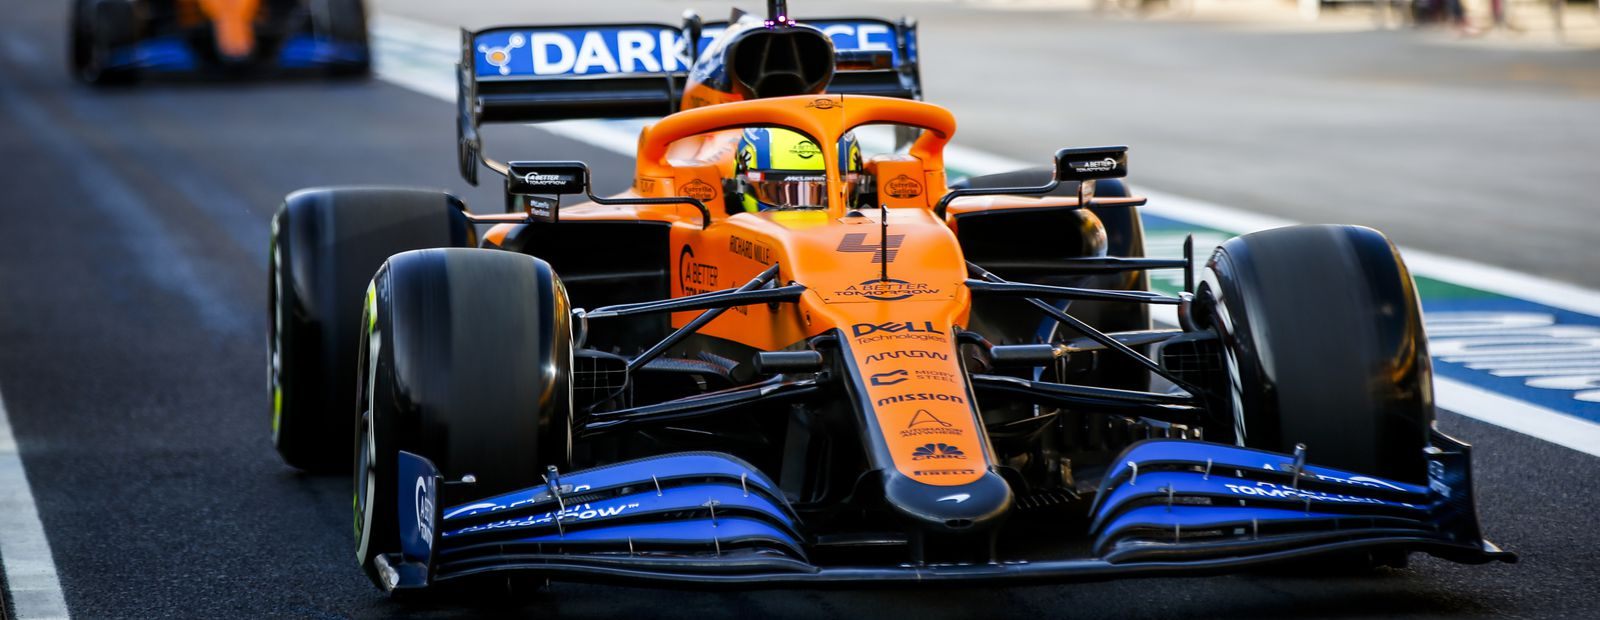 McLaren Group announces new investment in McLaren Racing